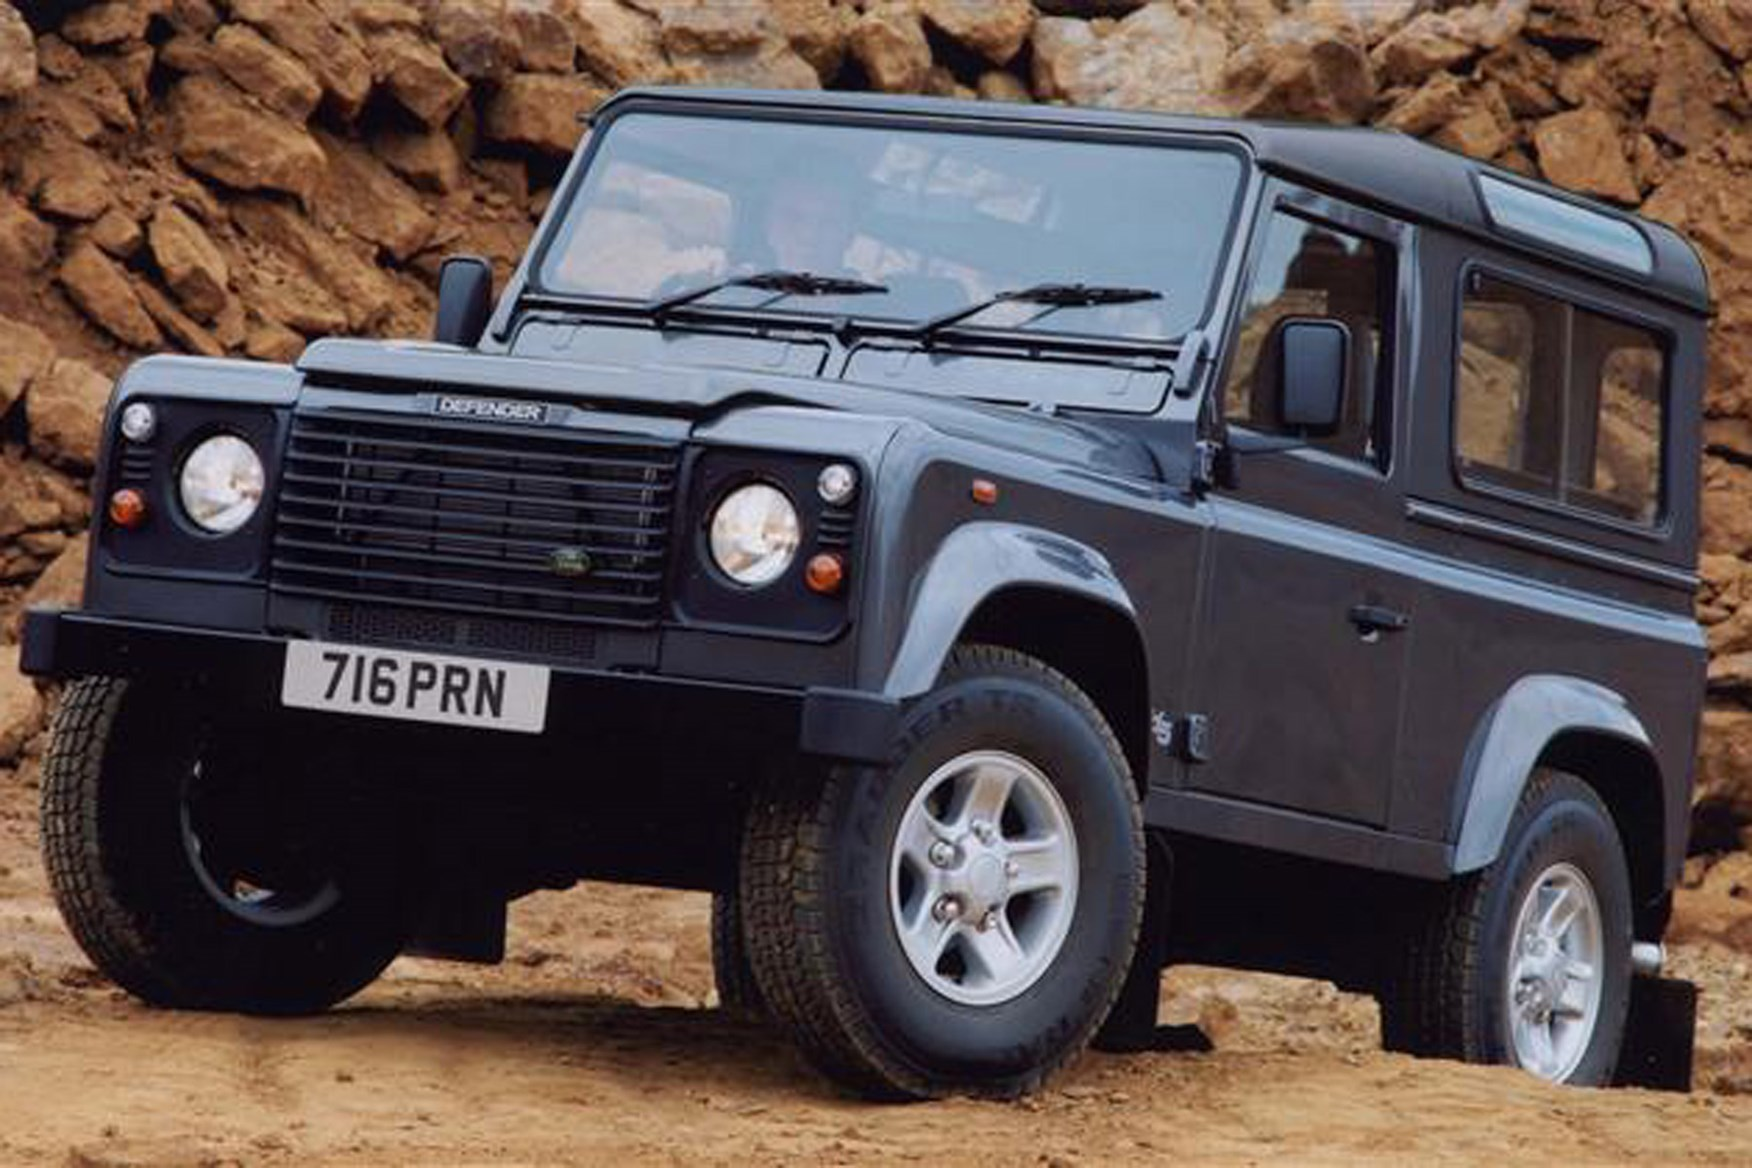 Land Rover Defender review on Parkers Vans - Defender 90 exterior